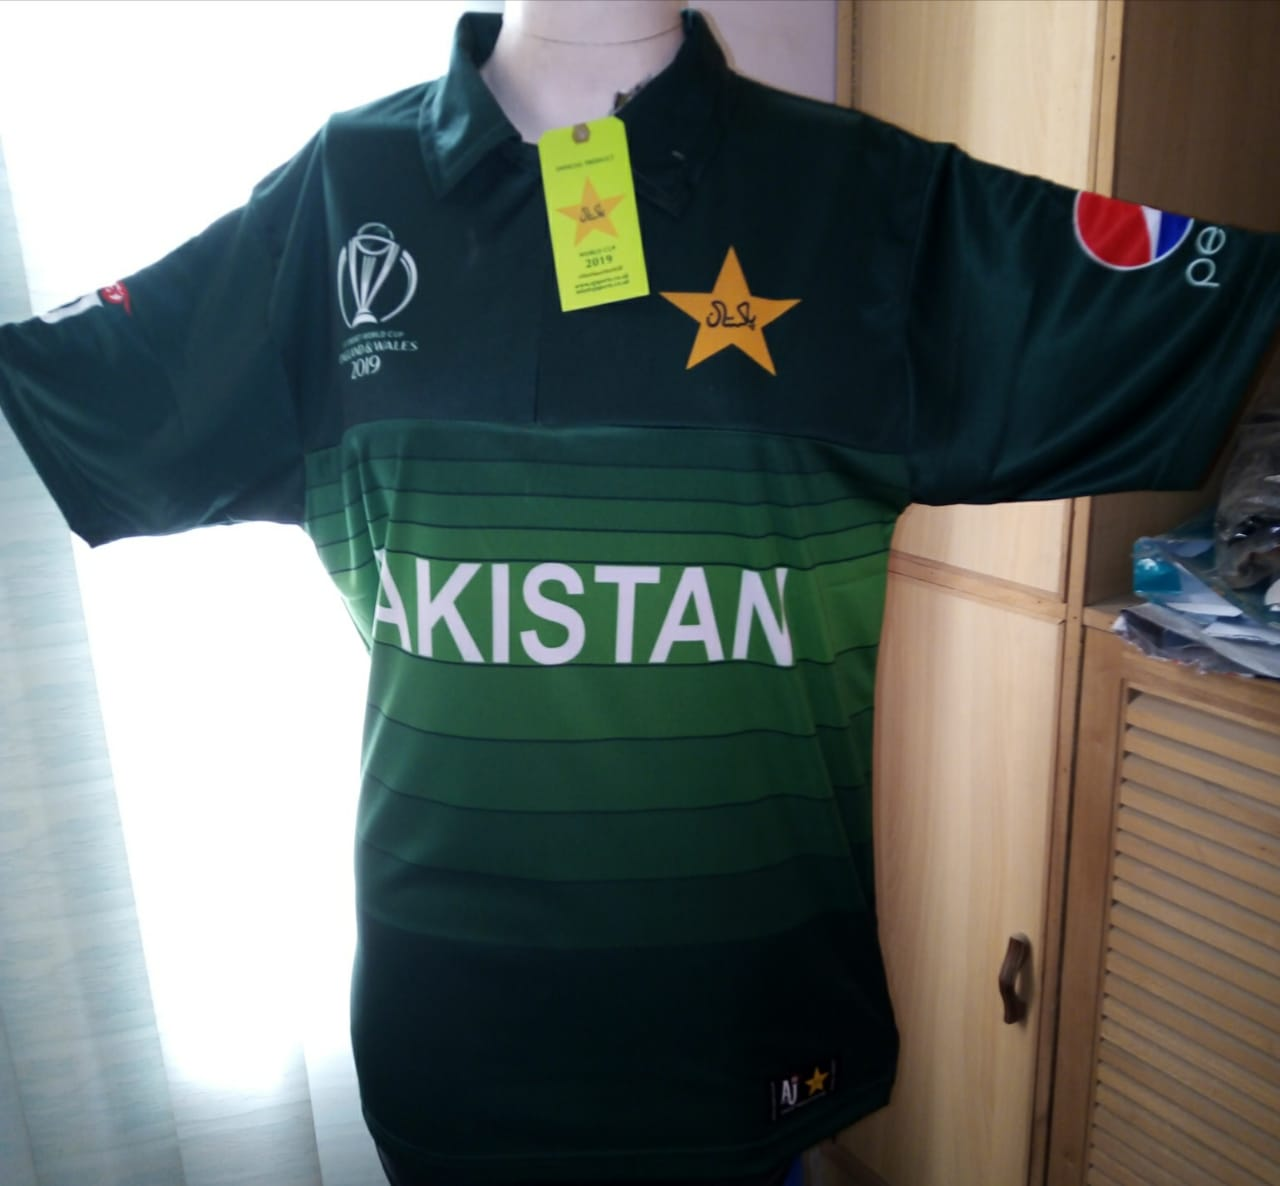 2019 Pakistan World Cup Shirt